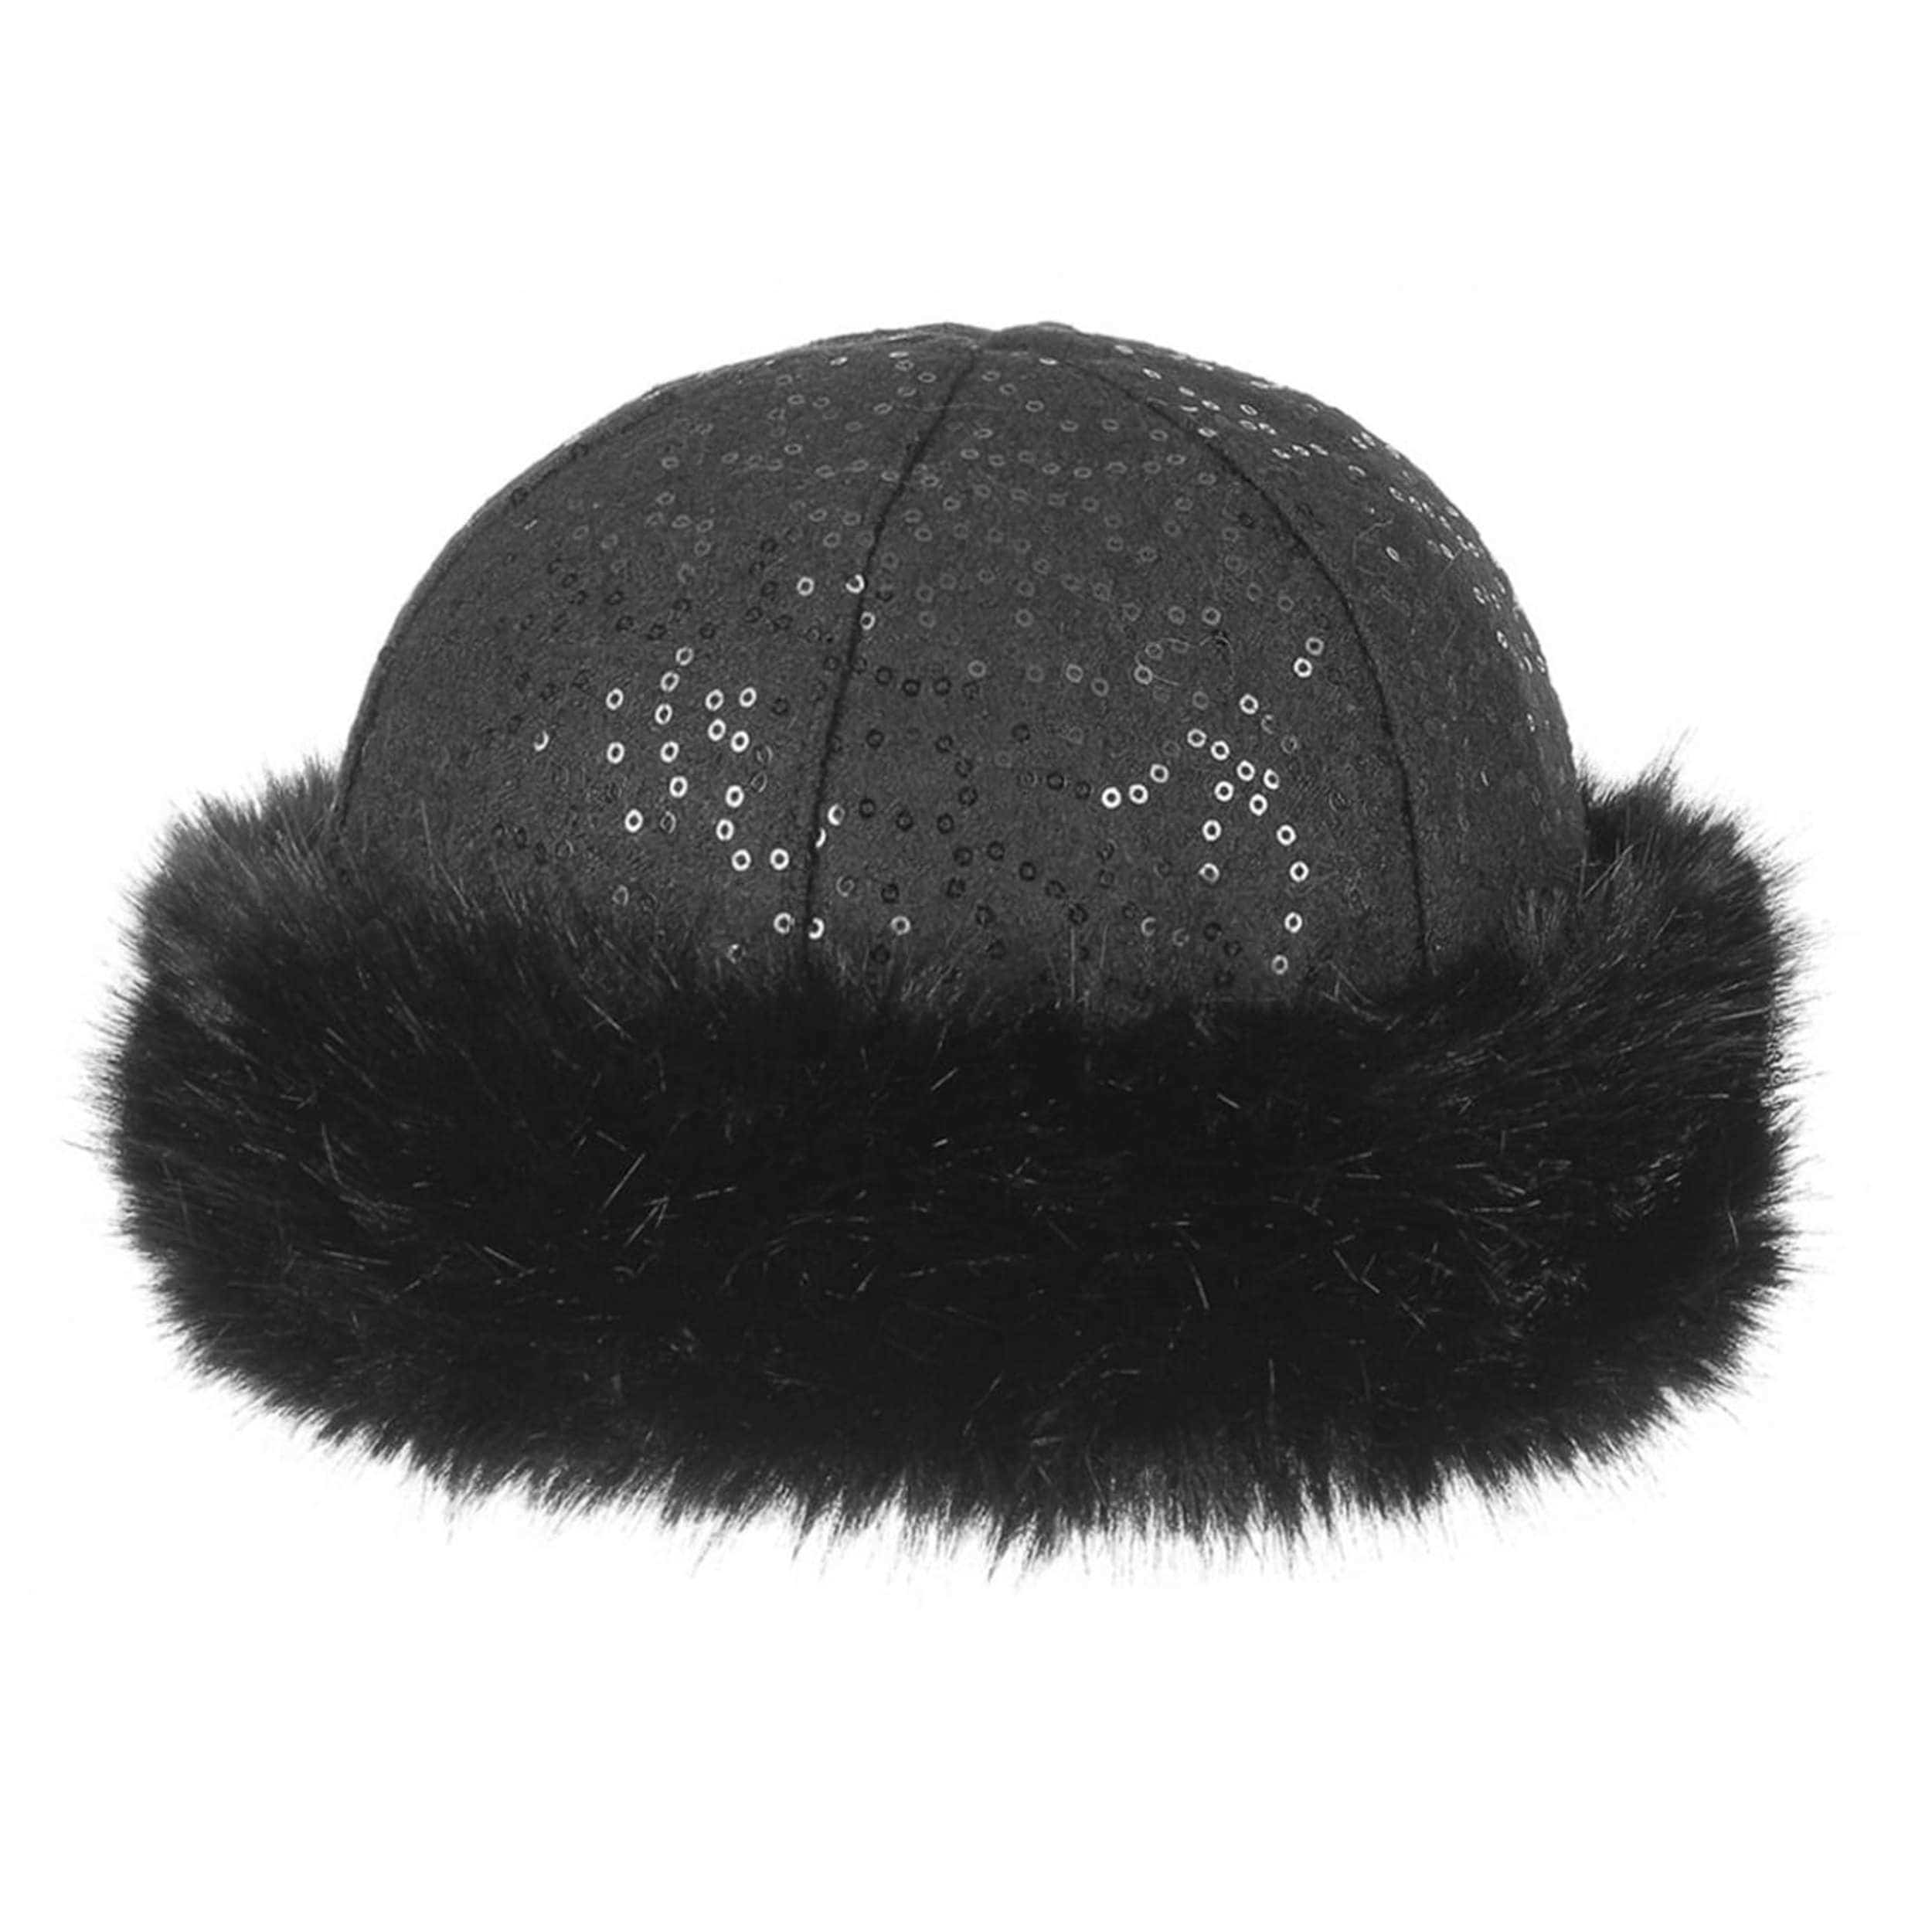 Sequined Hat with Faux Fur Brim by Gebeana